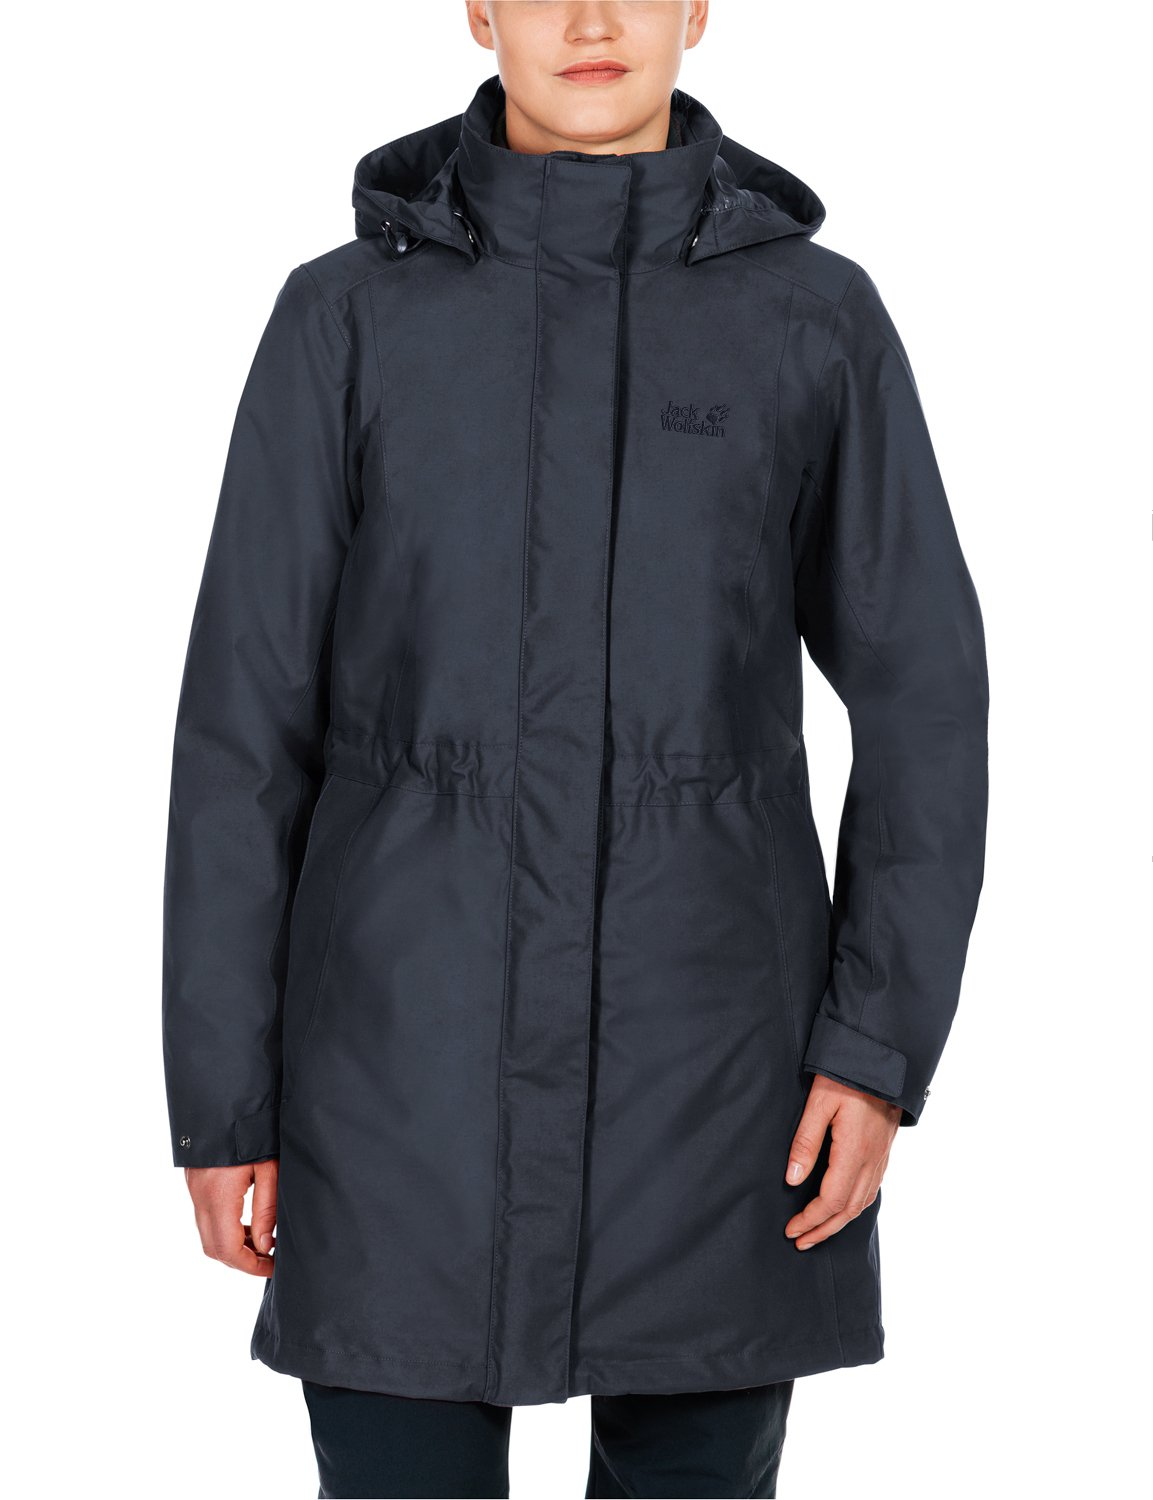 Jack wolfskin 3in1 mantel damen